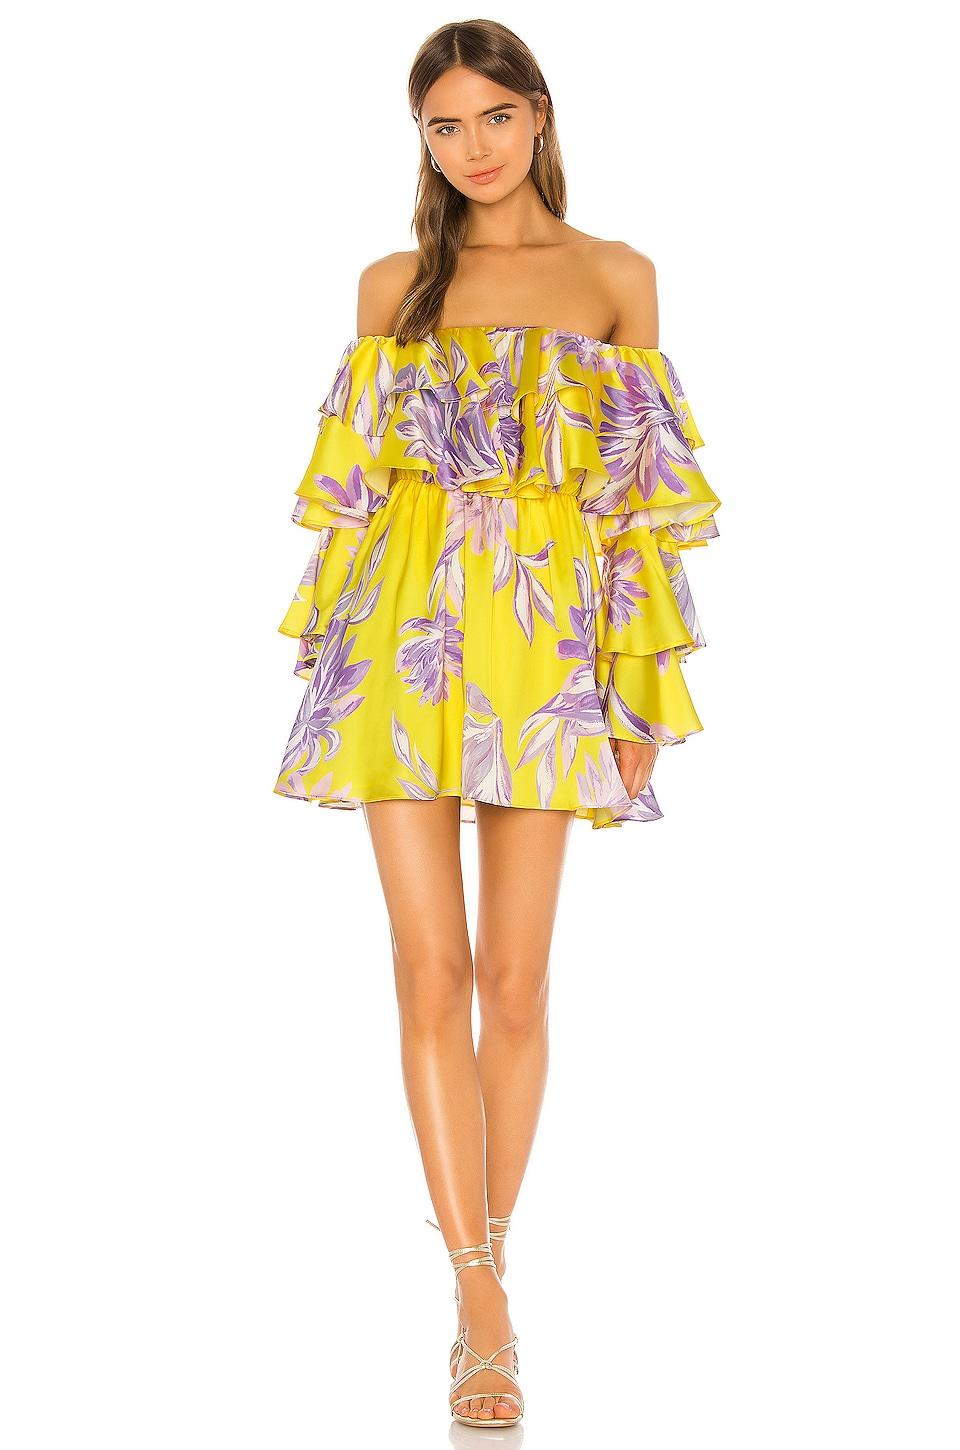 House of Harlow 1960 x REVOLVE Julita Mini Dress in Yellow Dahlia Floral